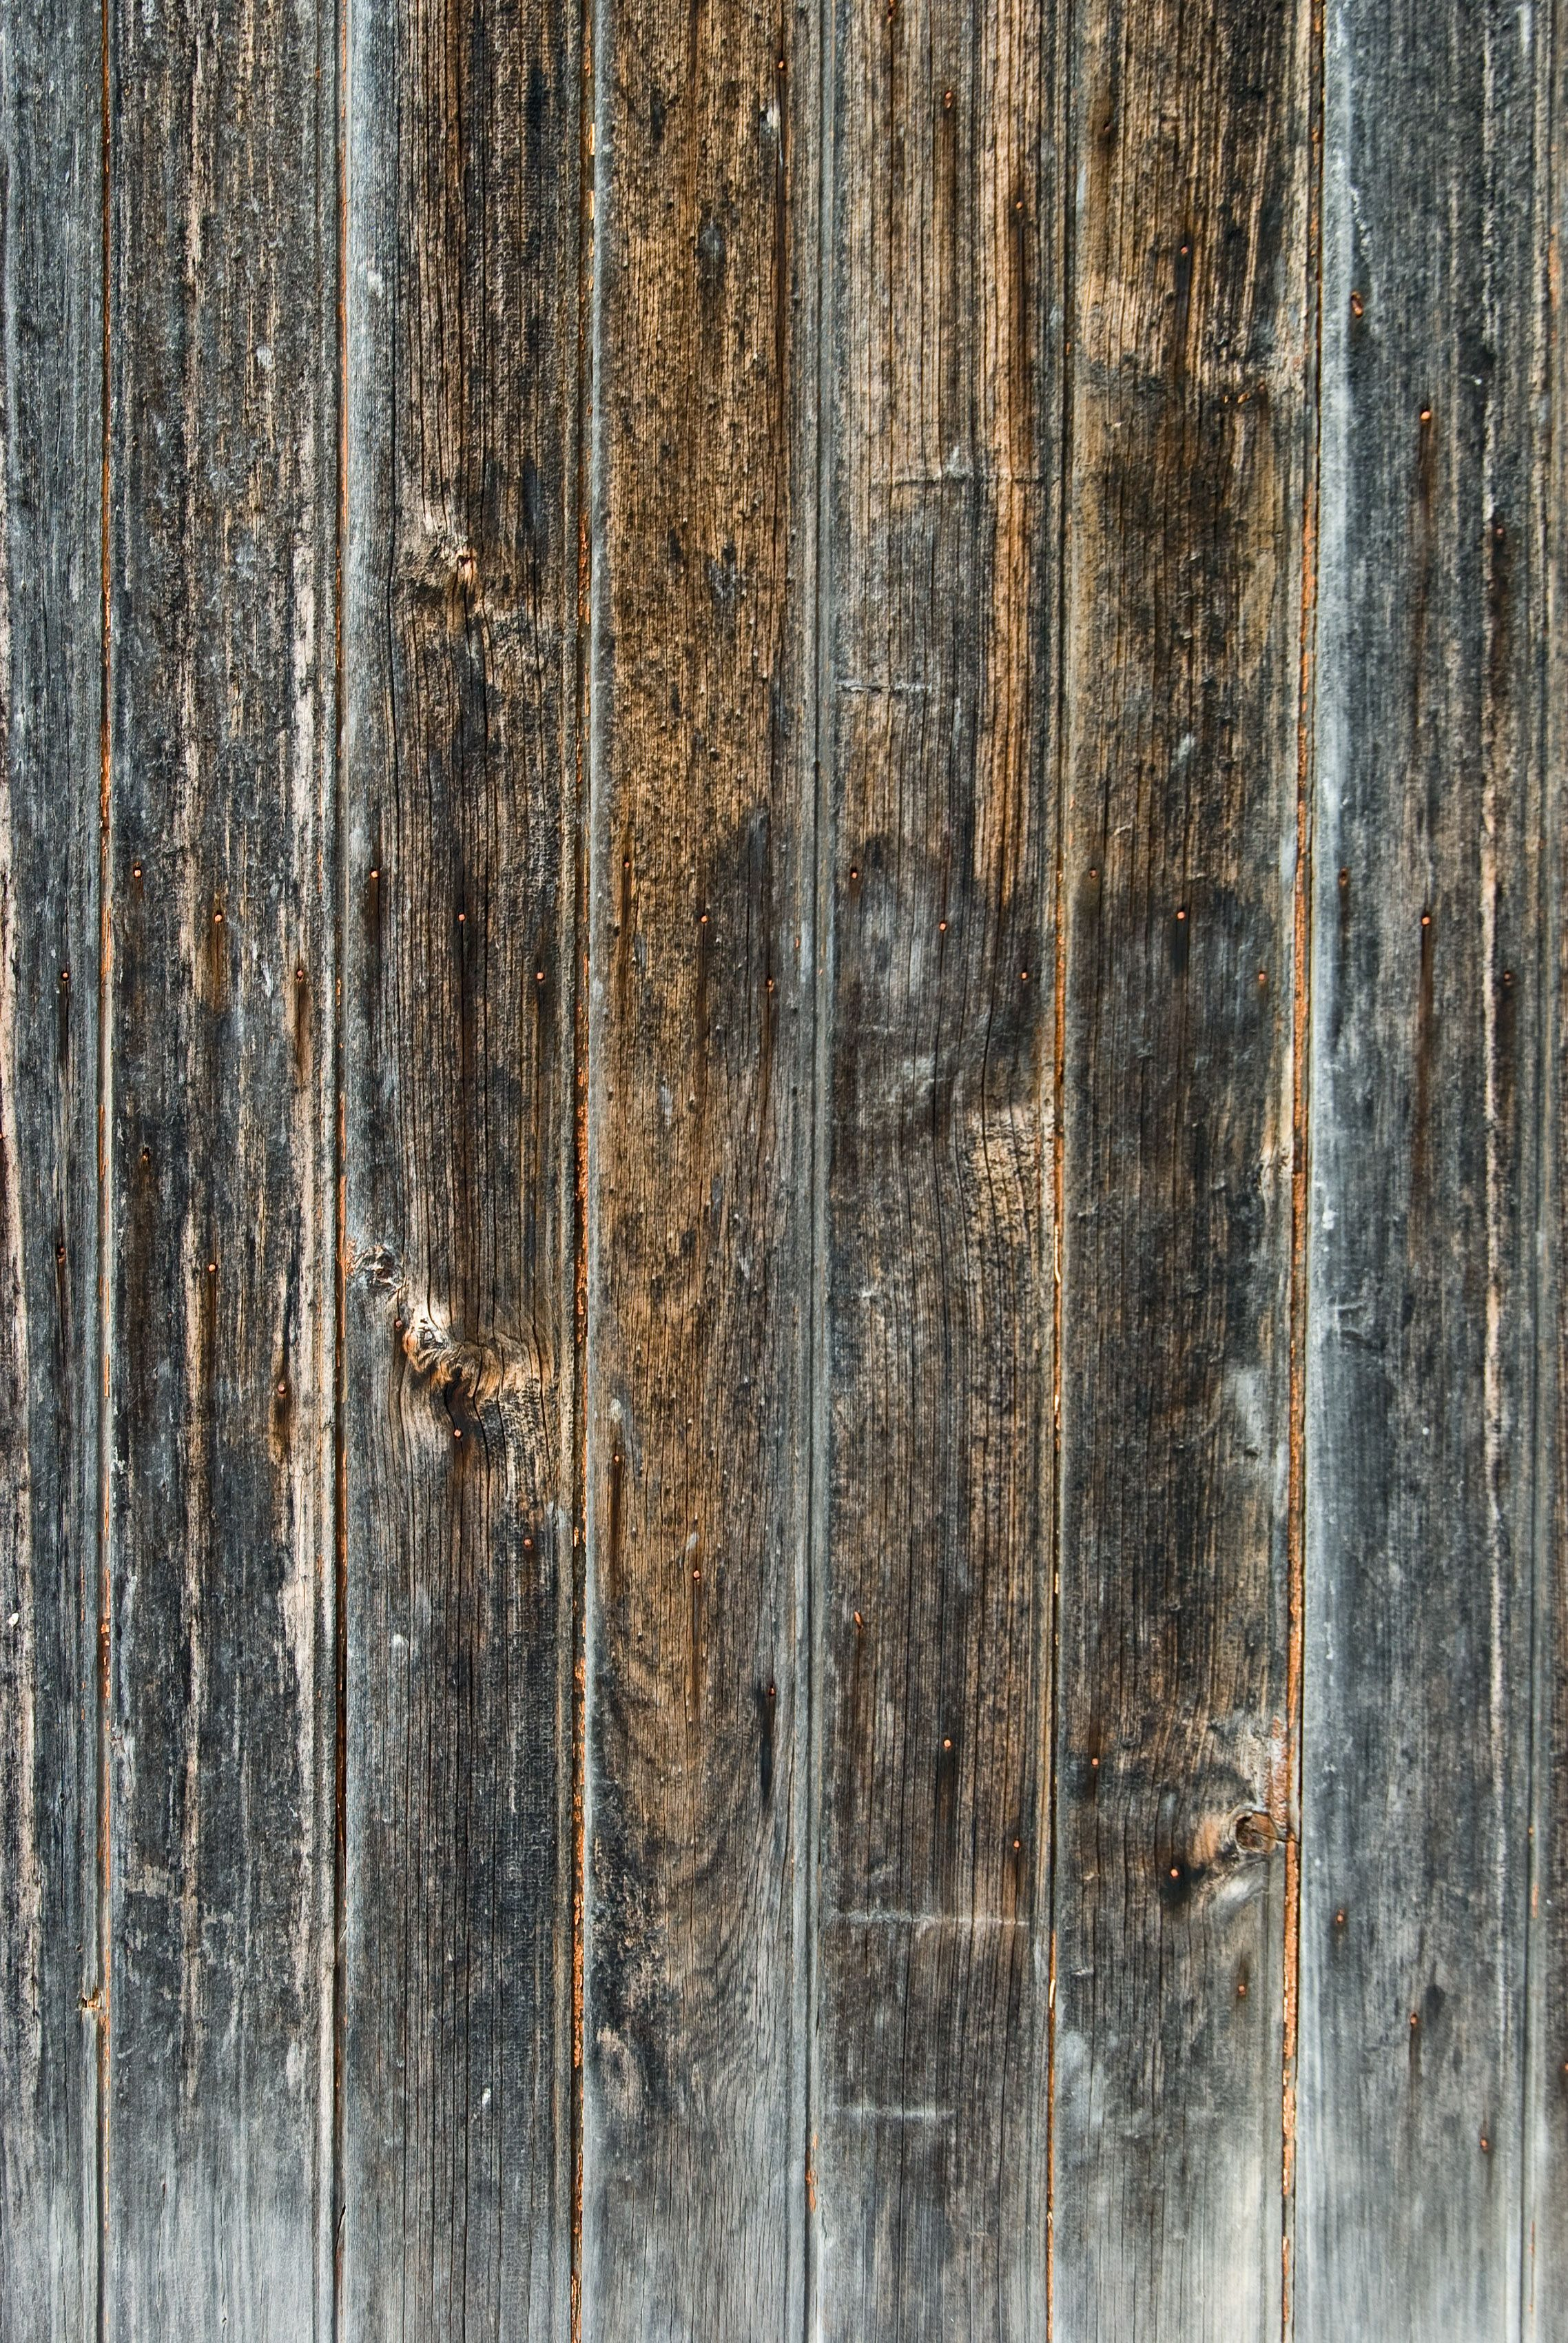 Old Wooden Fence Background Grunge Wood Fence Paling